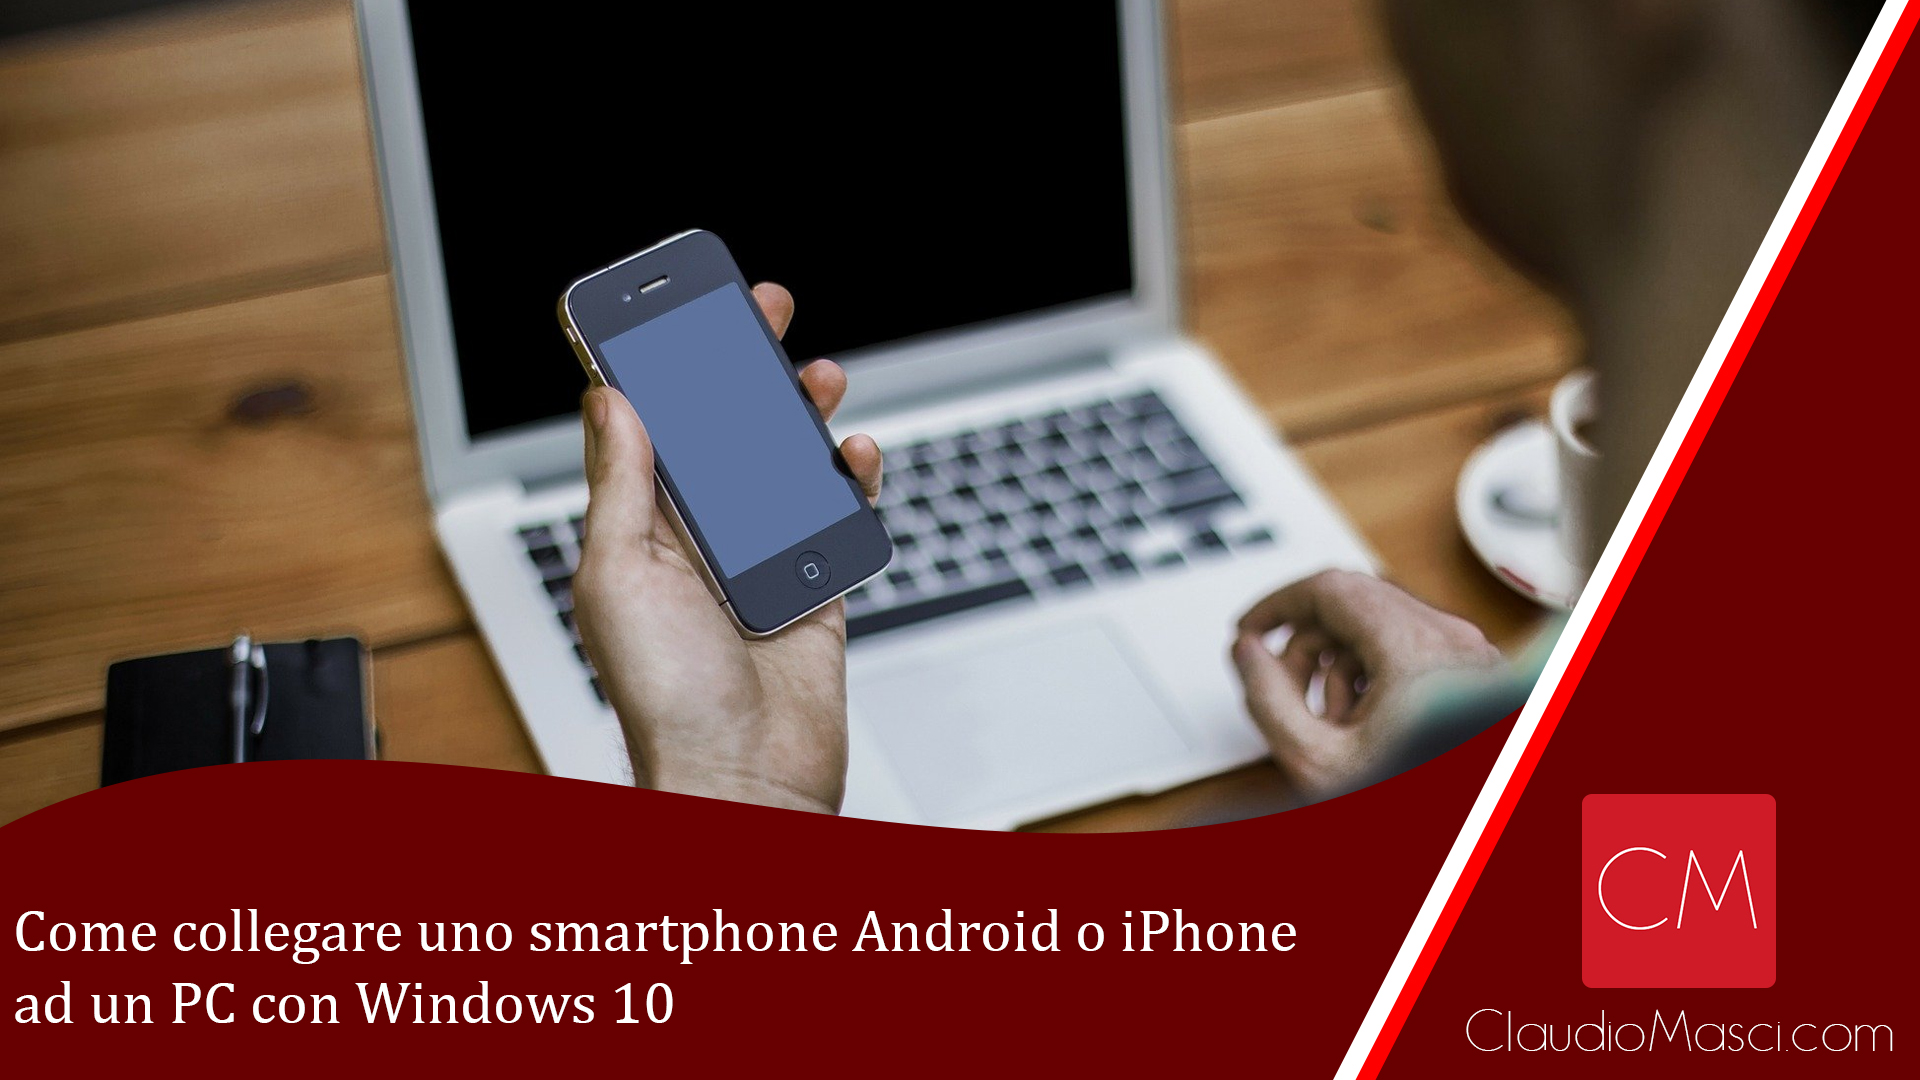 Come collegare uno smartphone Android o iPhone ad un PC con Windows 10